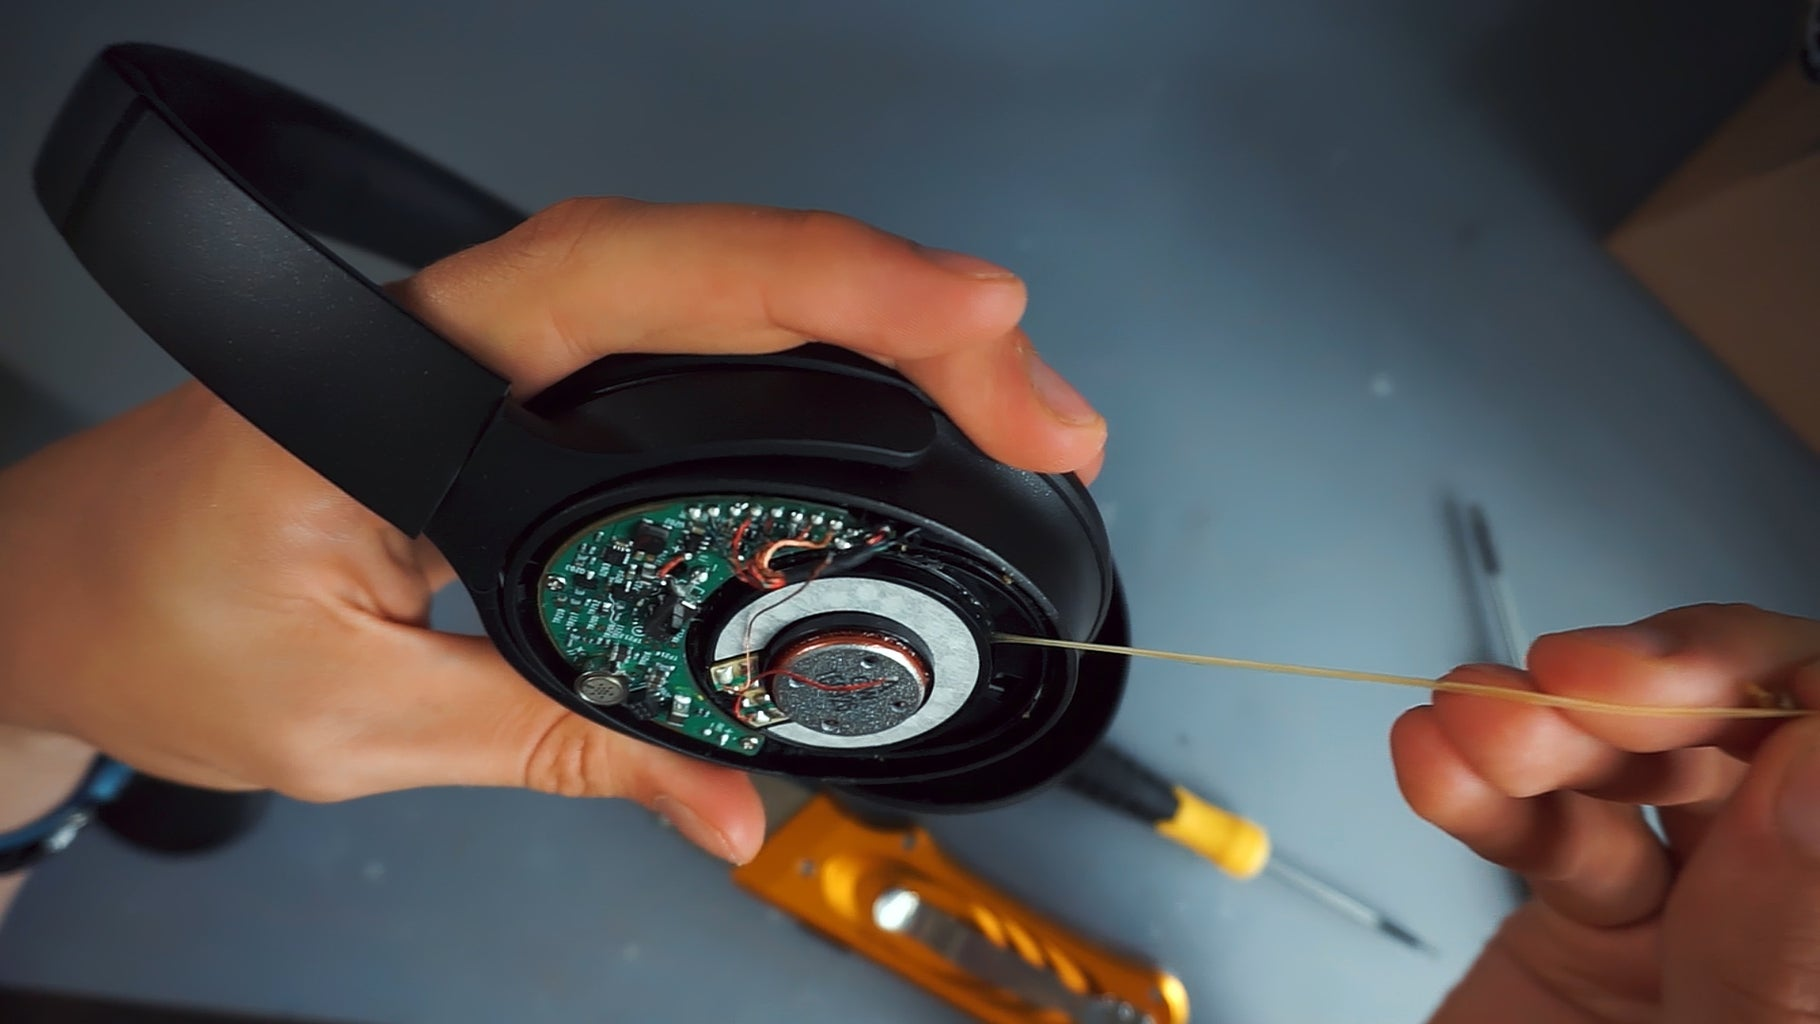 Removing the Faulty Speaker